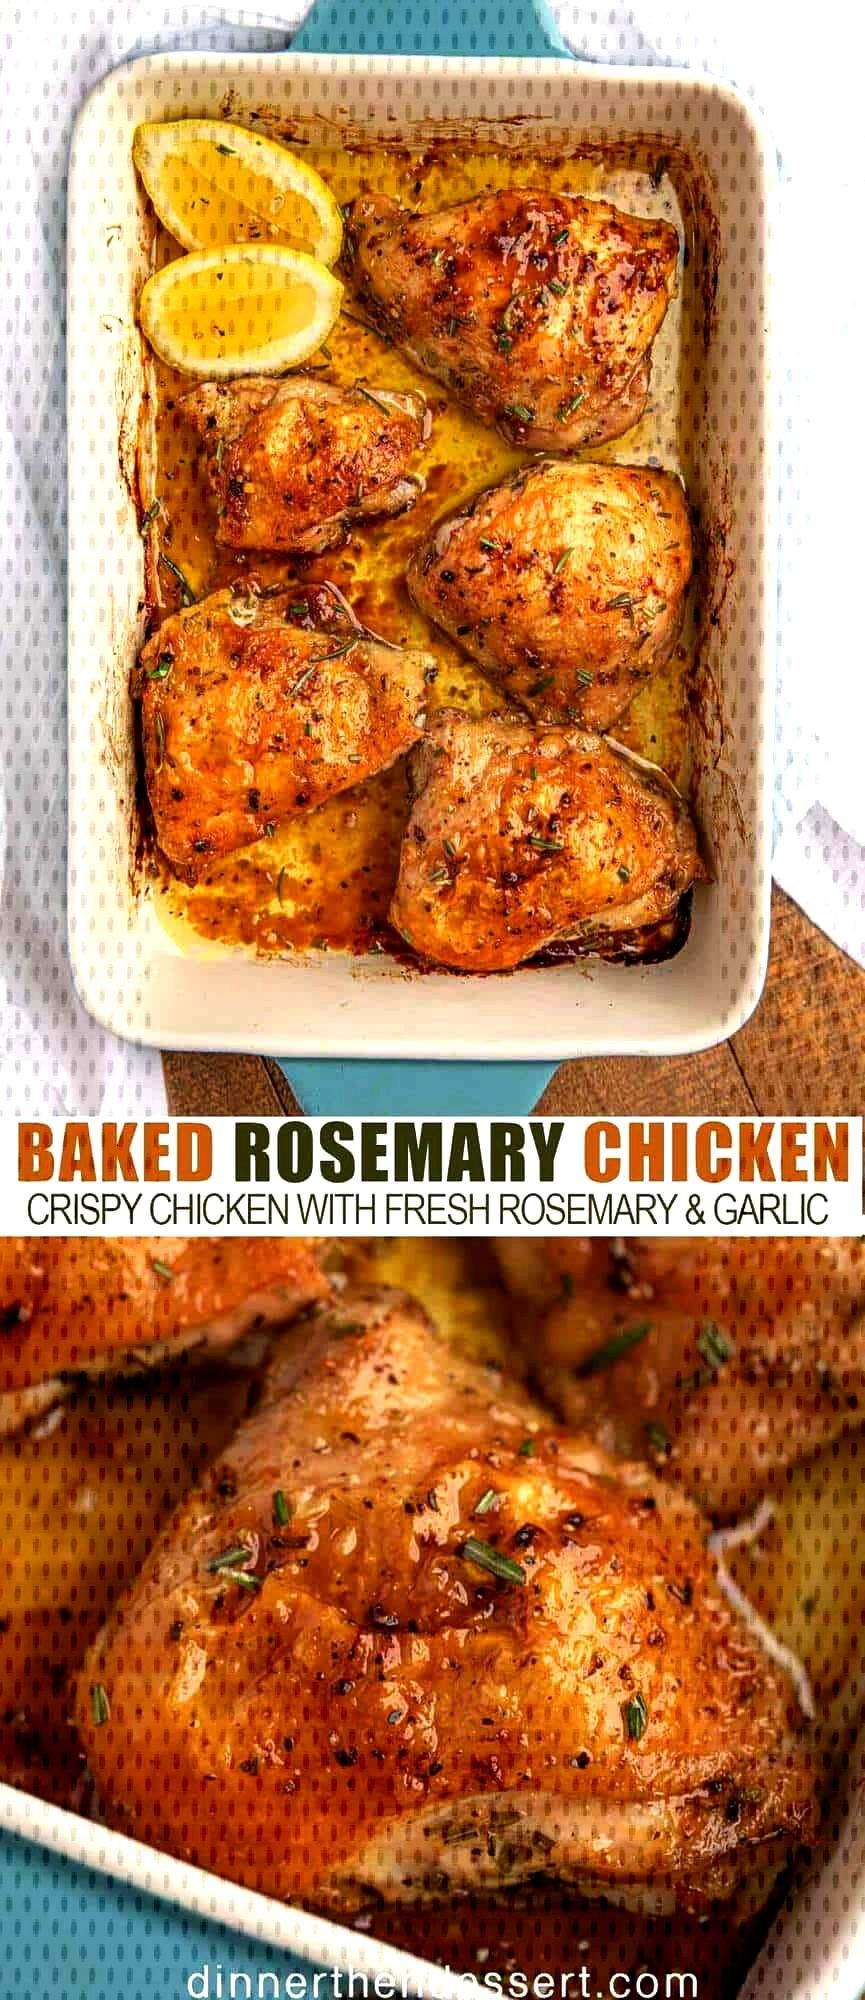 Baked Rosemary Chicken is a delicious, crispy baked chicken recipe with fresh rosemary and garlic t